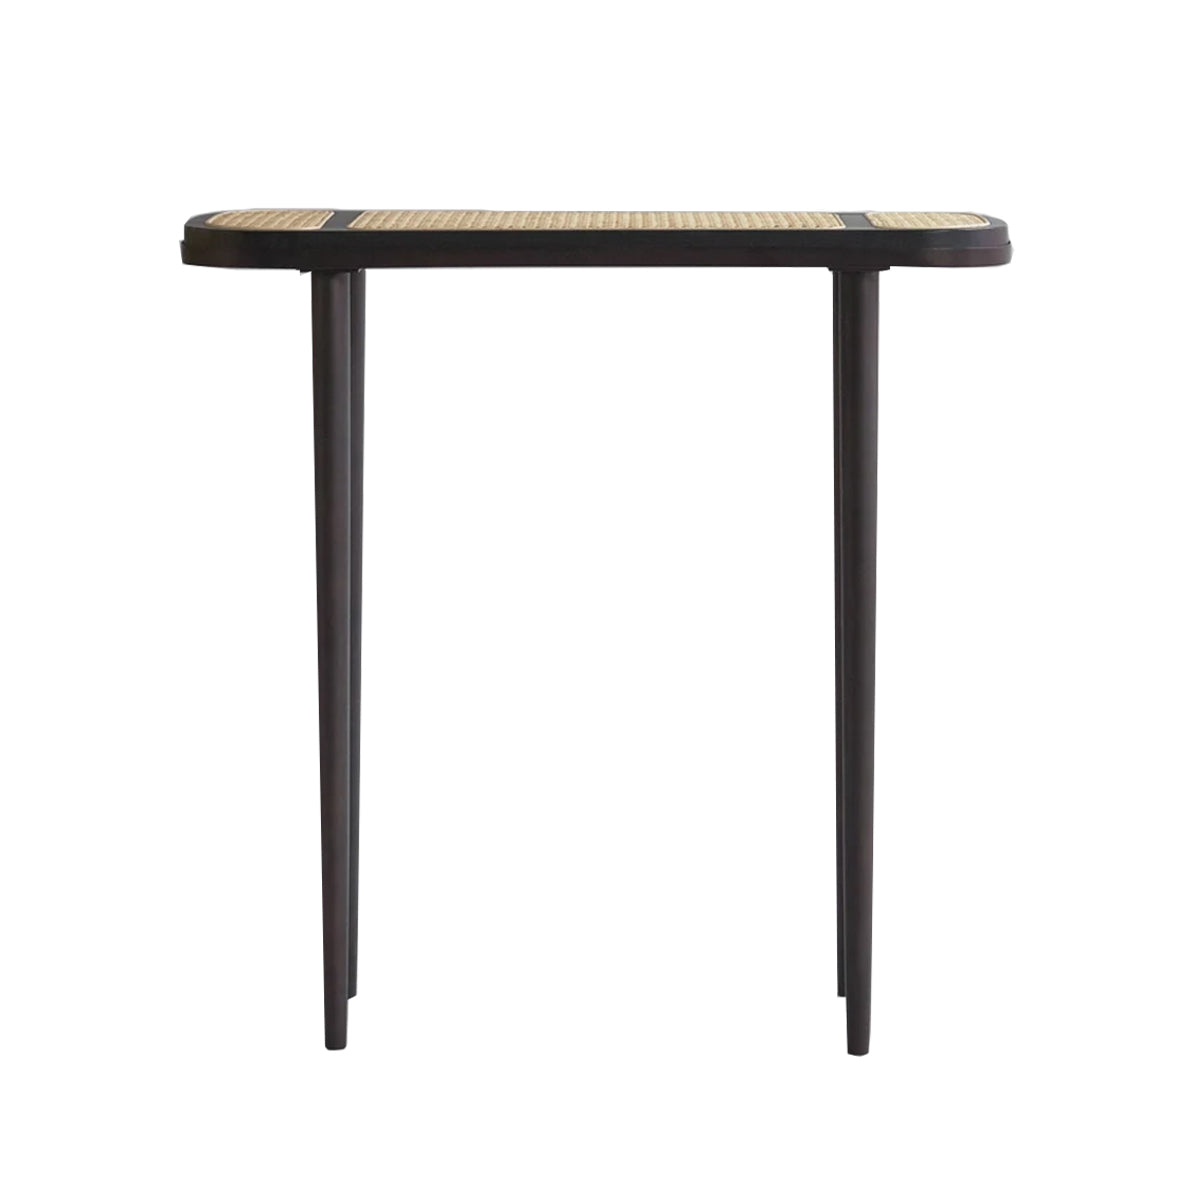 Hako Console Table by 101 Copenhagen | Do Shop